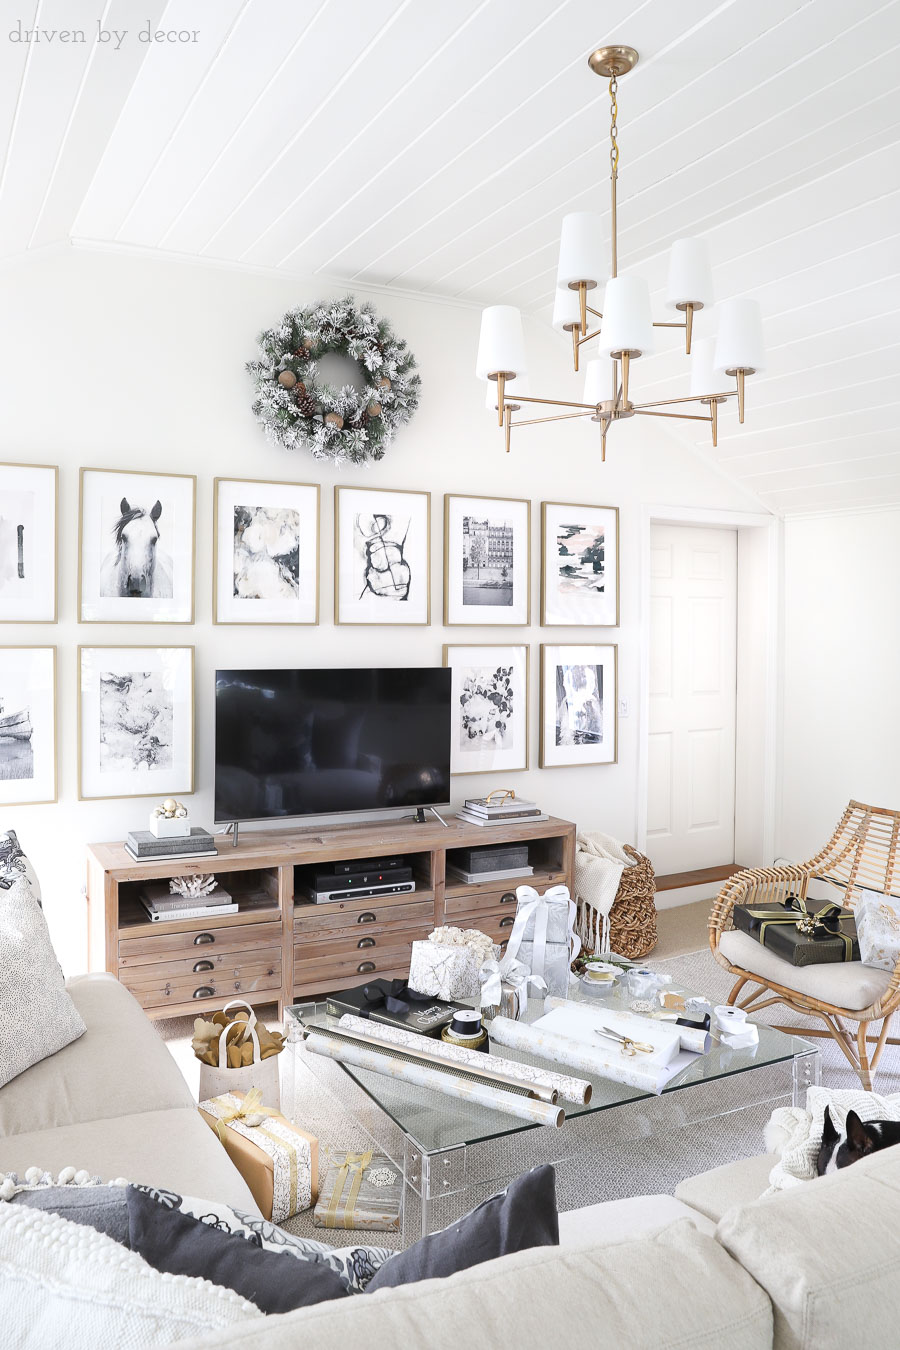 Family room decorated simply but beautifully for the holidays! LOVE that TV console and chandelier!!